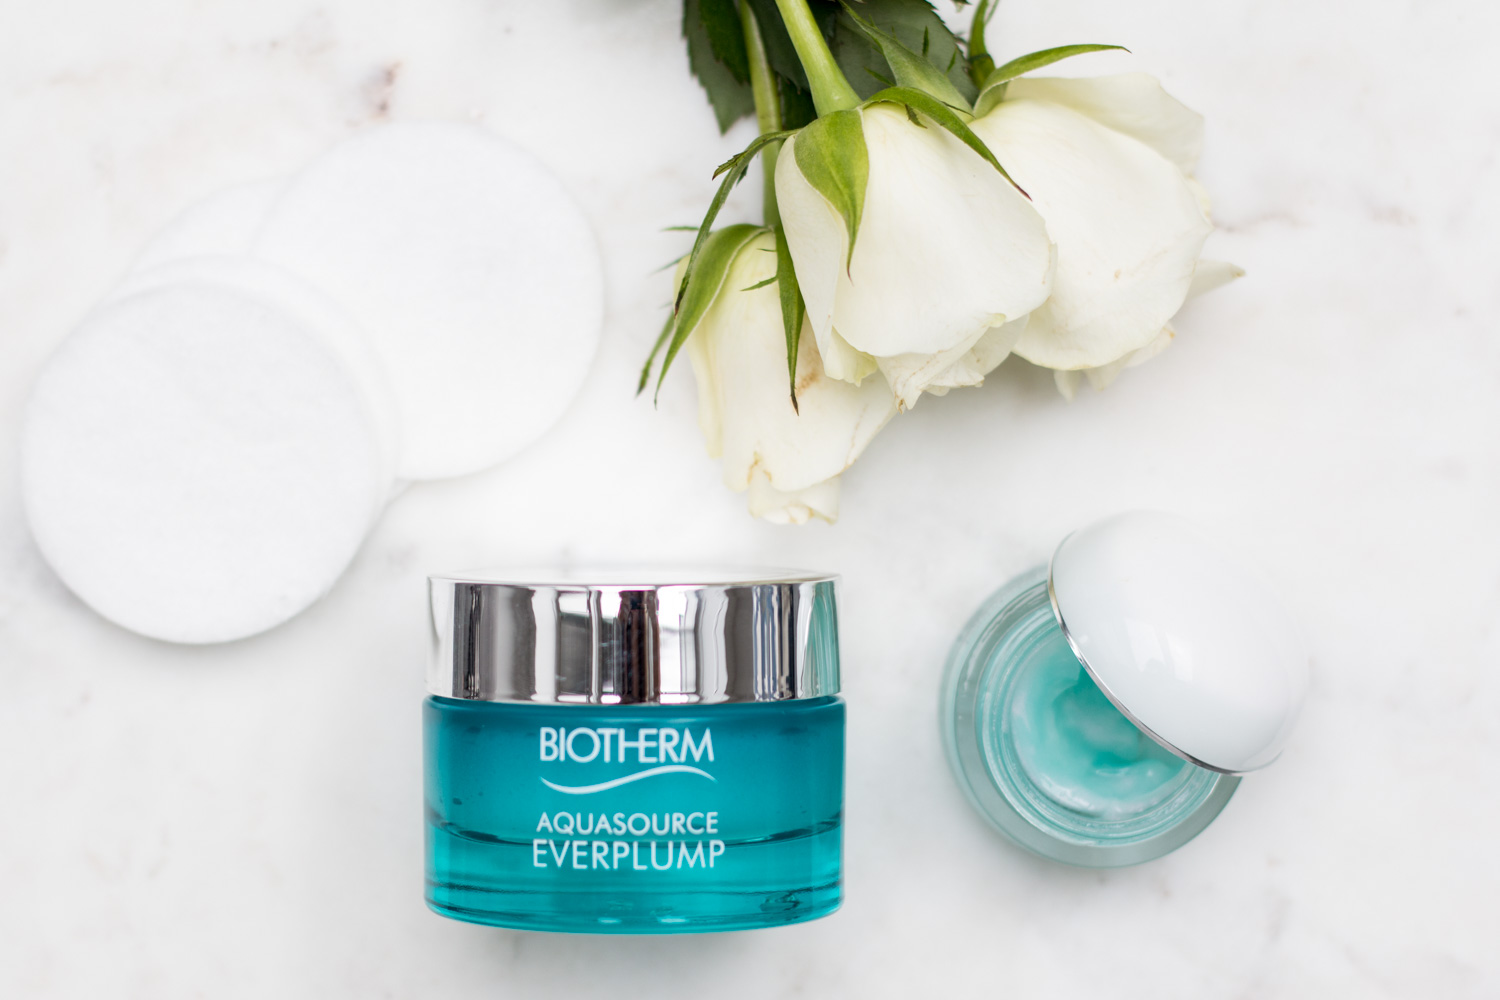 Biotherm-Aquasource-Everplump-4